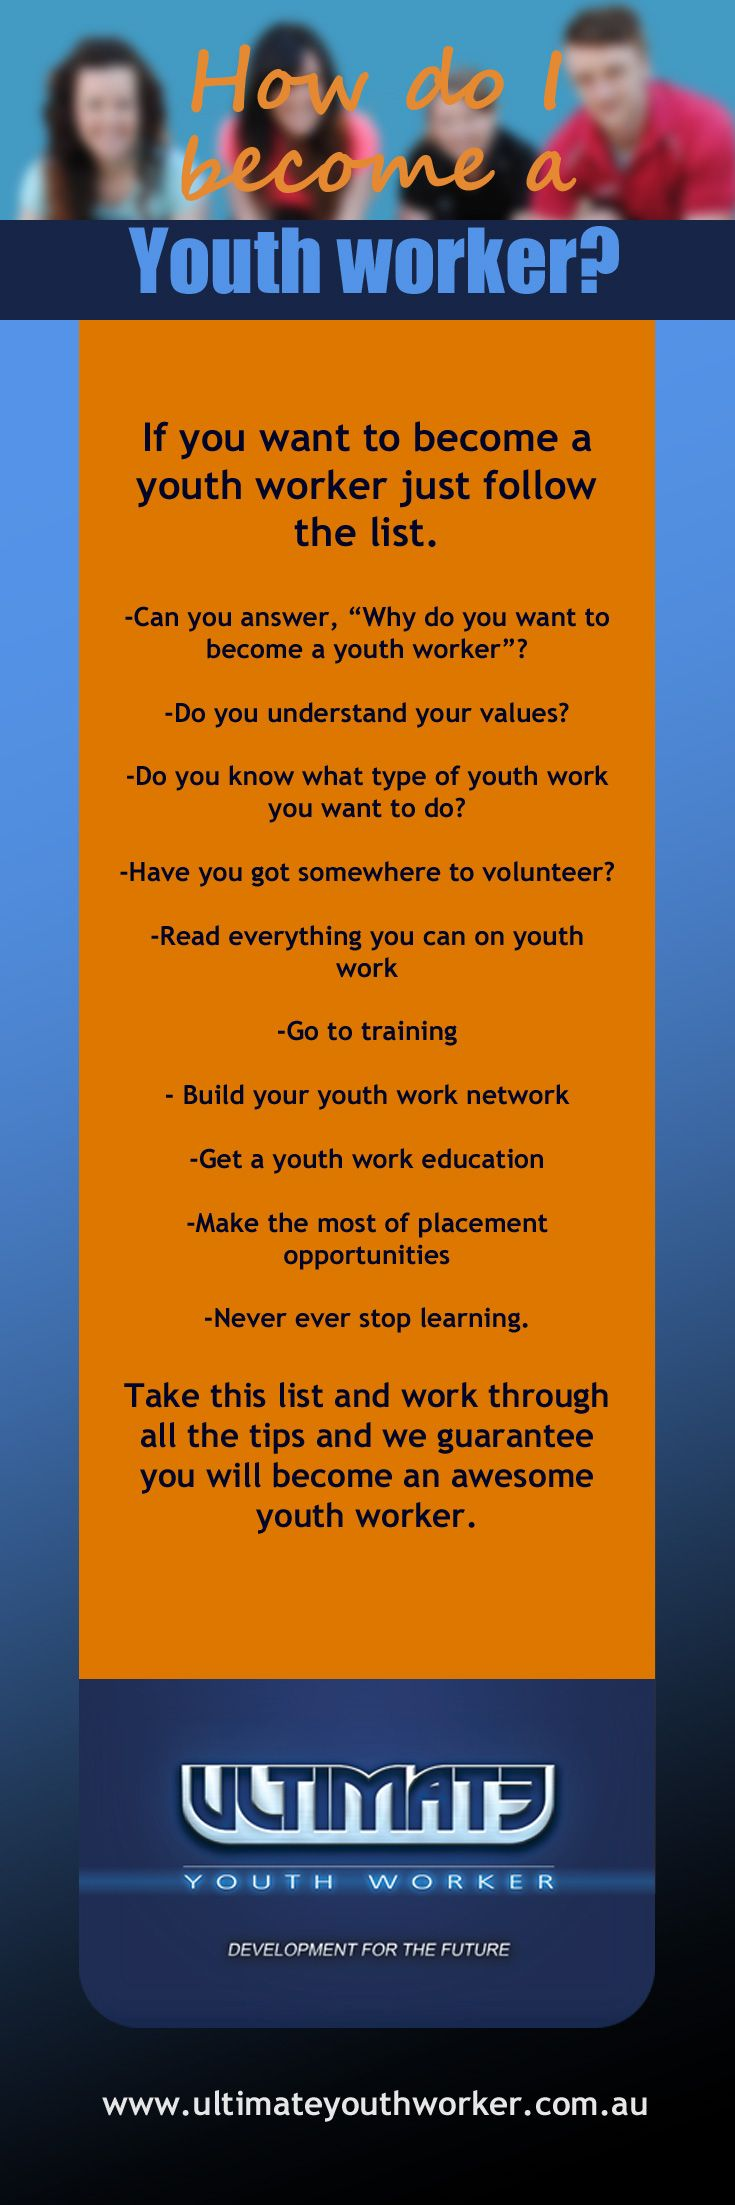 Over the years I have had hundreds of people speak to me, email me, message me on Facebook even get their parents to reach out with the basic intent of asking the best way to become a youth worker. I say this so often it has become a bit of a spiel so stay with me and by the end you will have a clear guide on how to become a great youth worker.